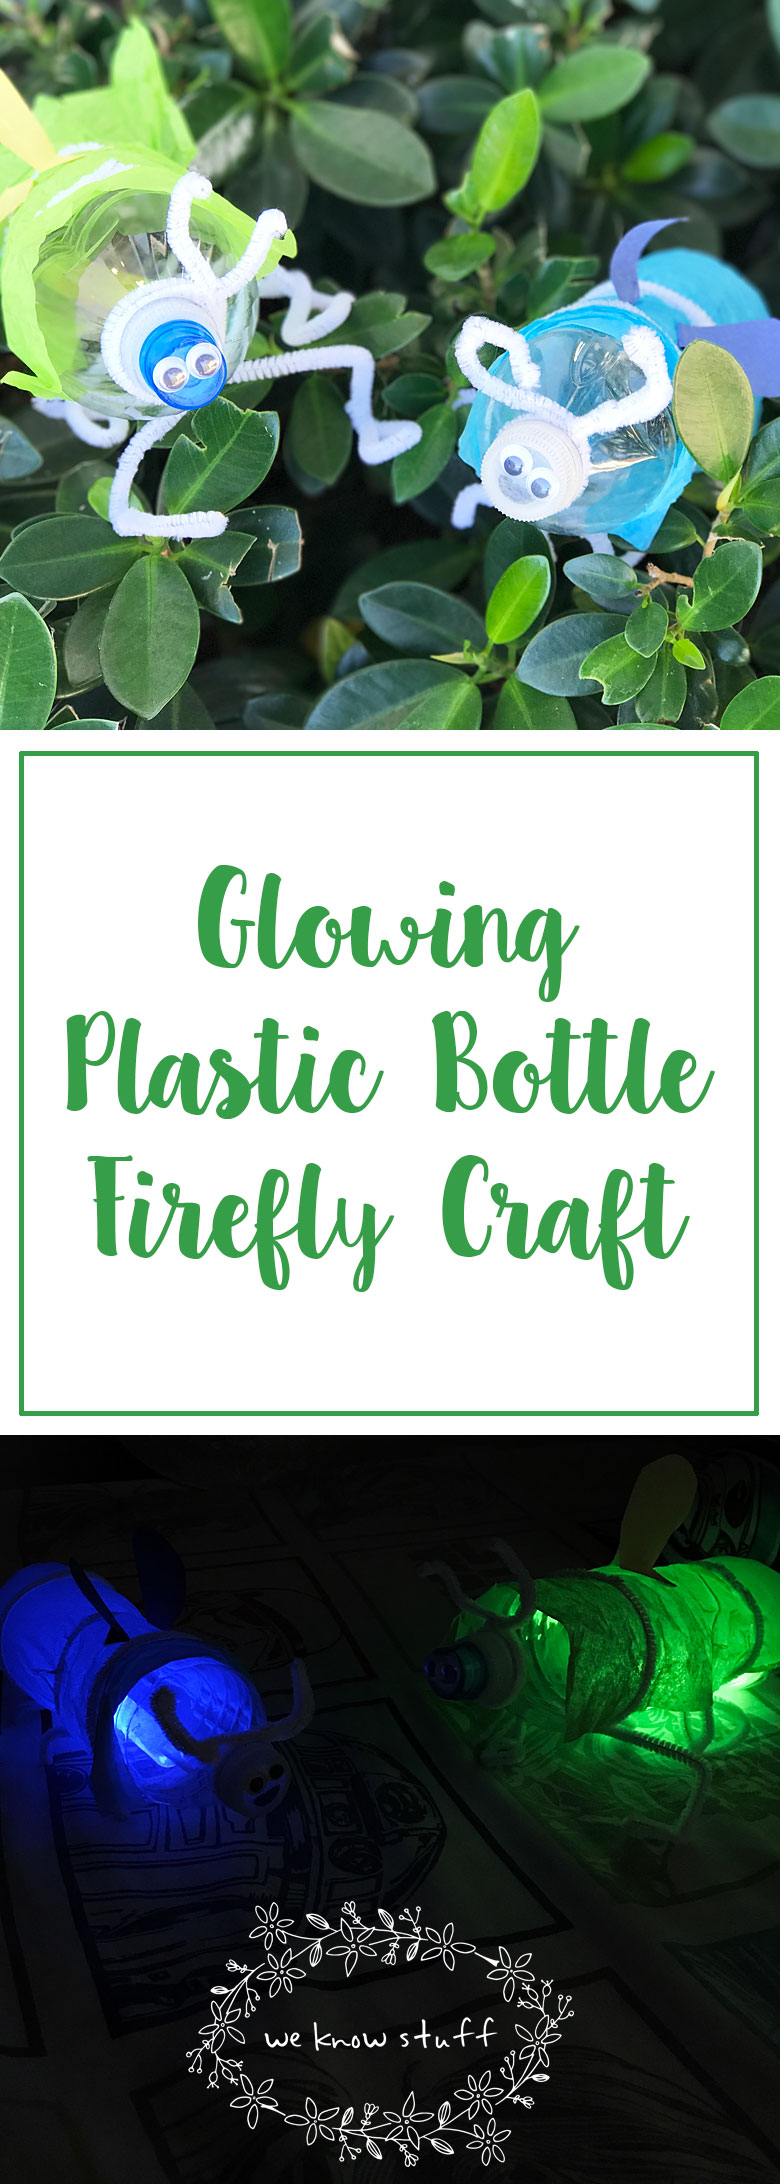 In the city, we don't get to see real fireflies. This glowing plastic bottle firefly craft is a fun way to show kids what they look like when night falls!